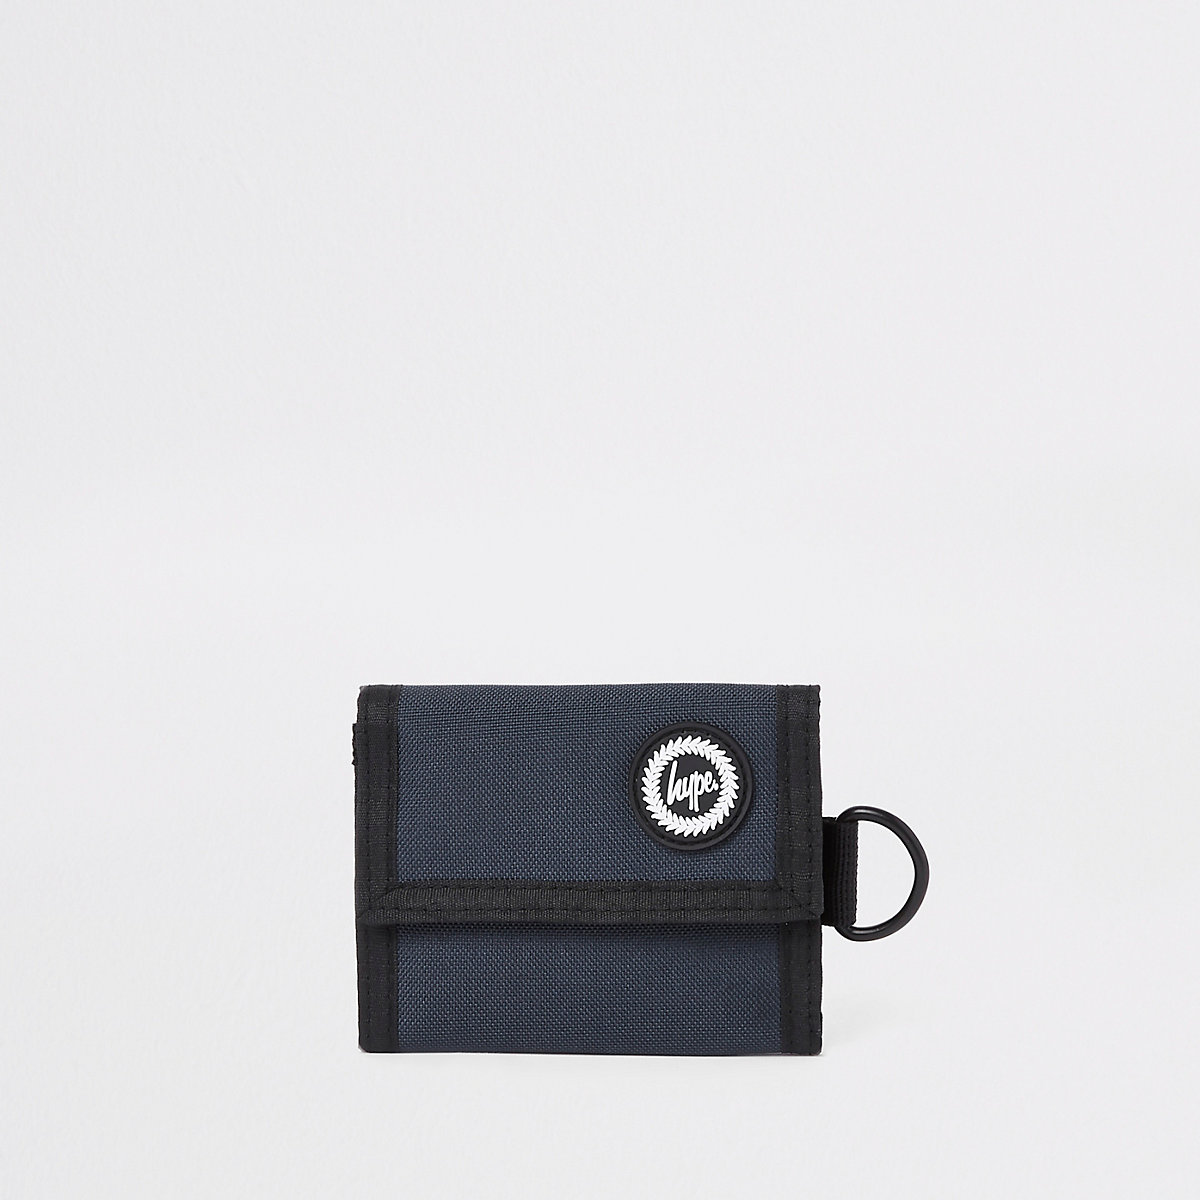 Hype navy space embroidered wallet